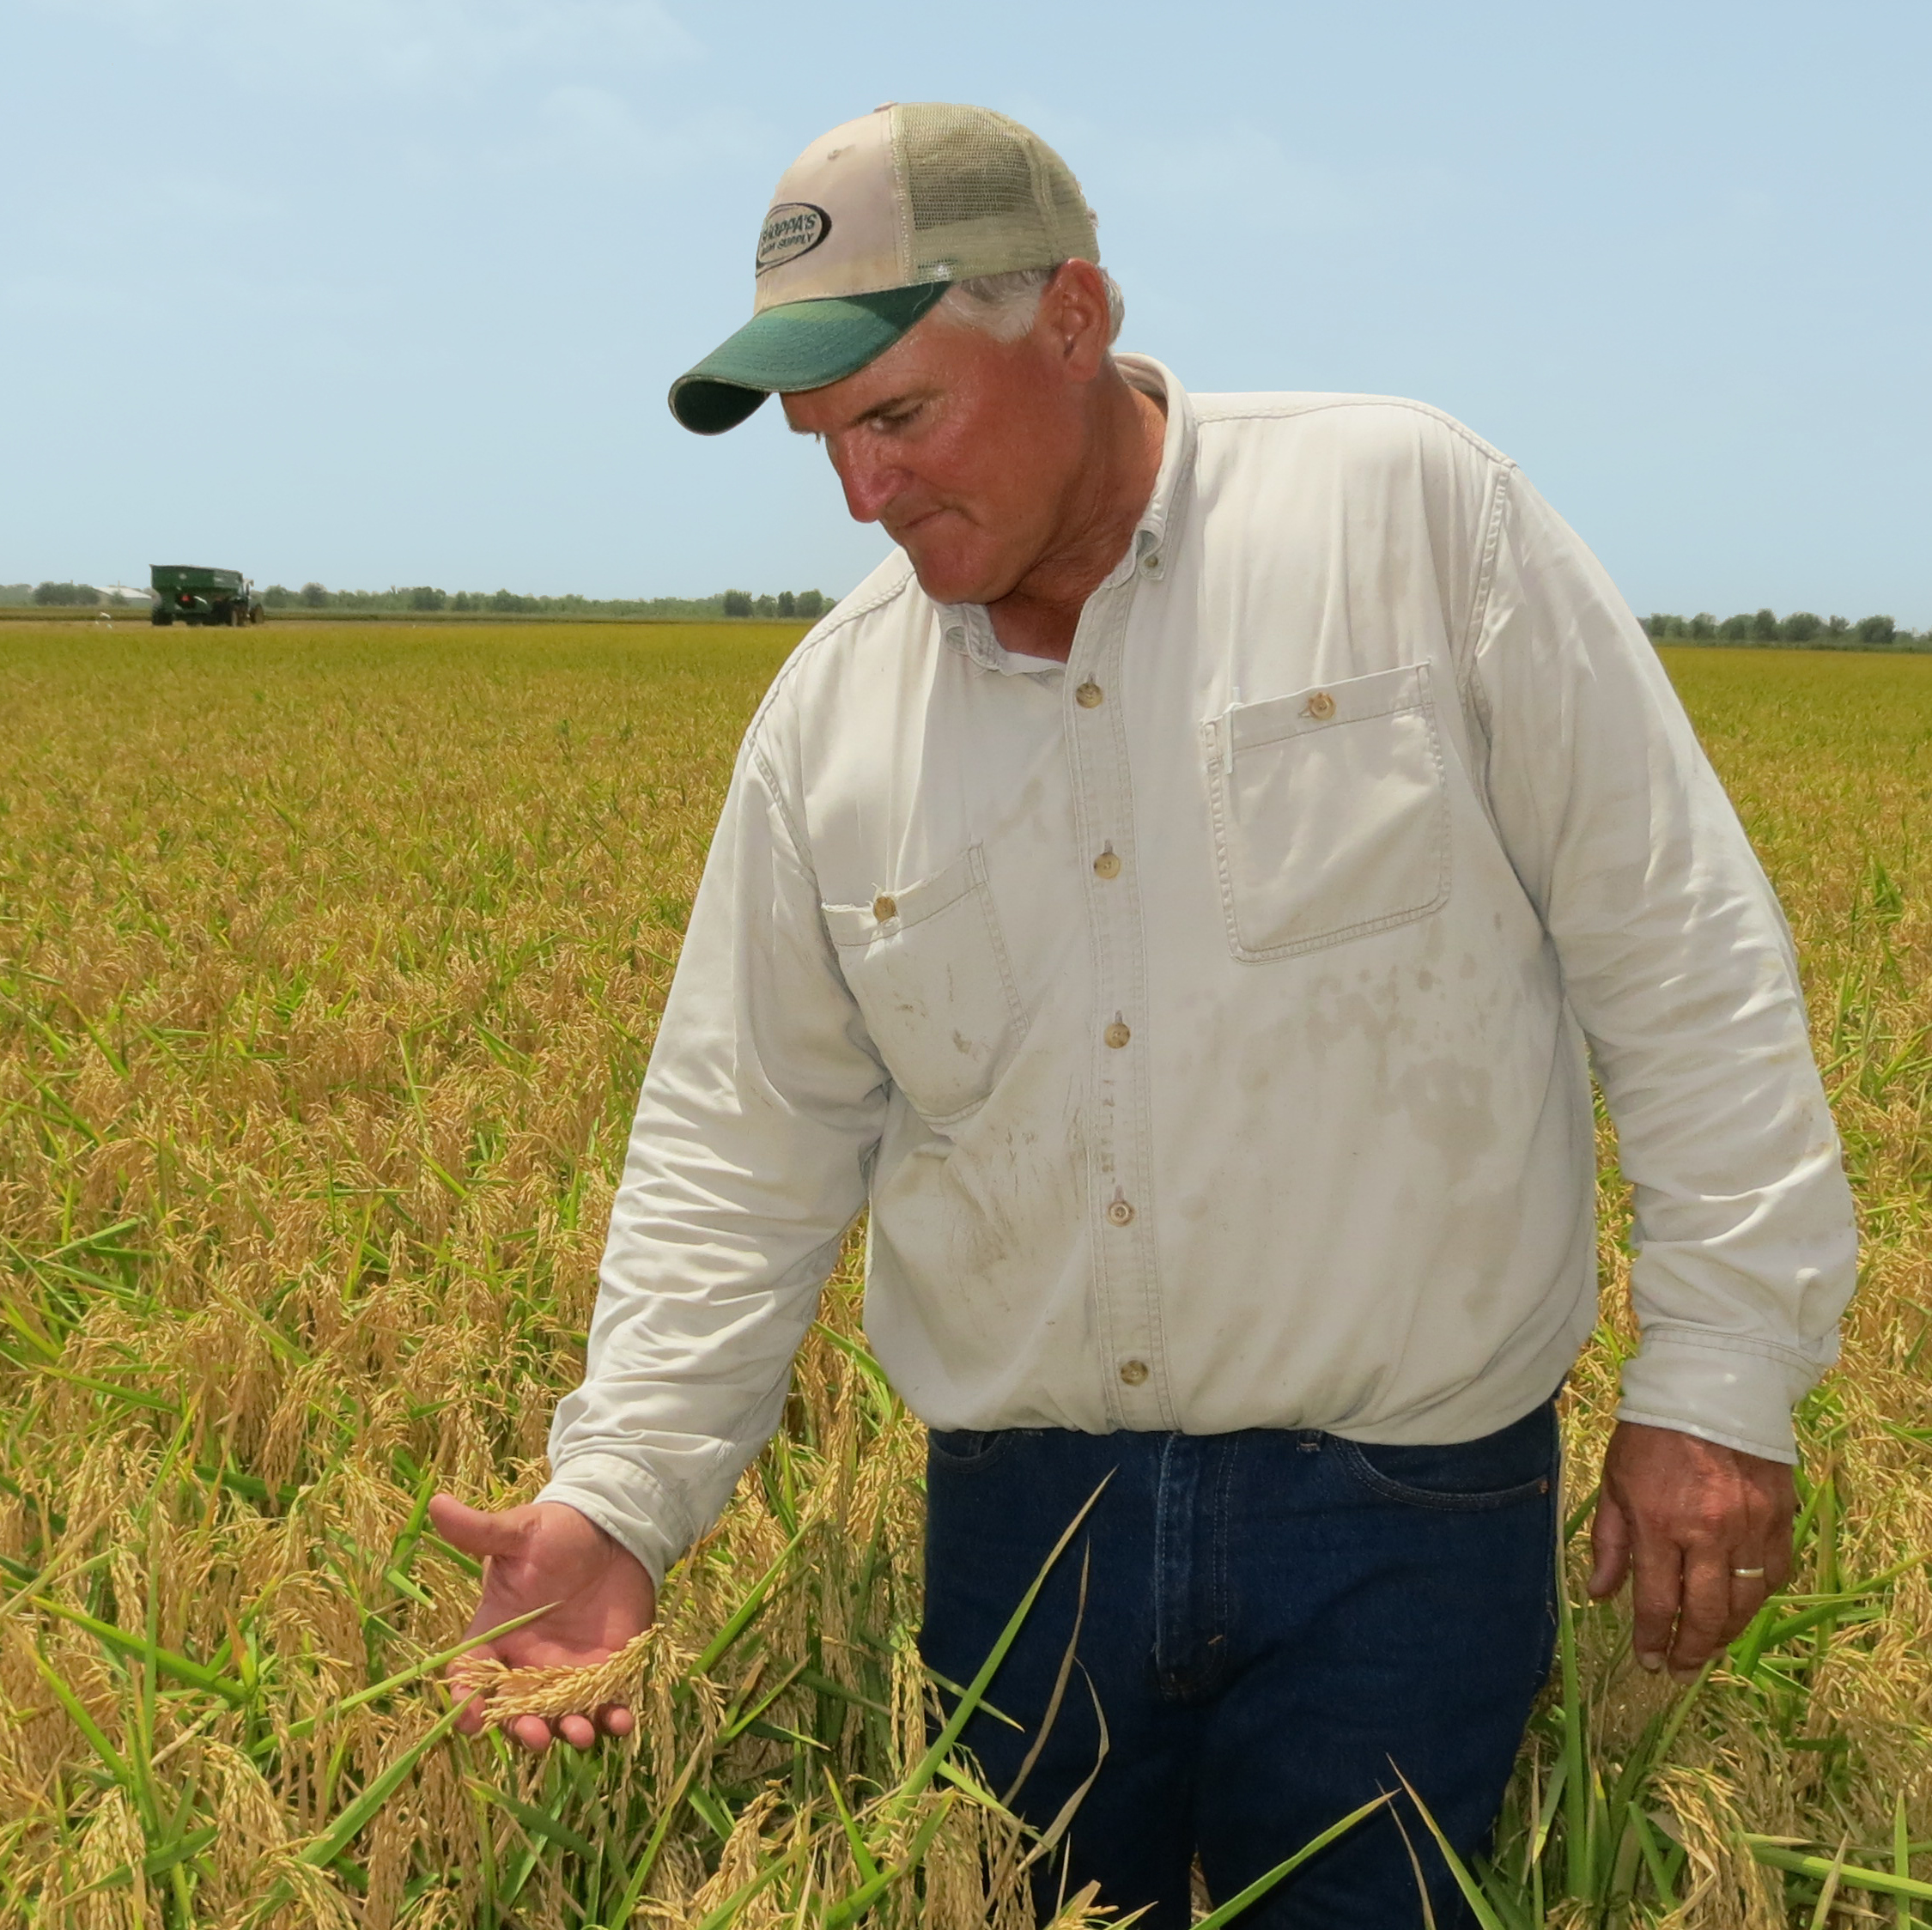 Texas rice farmer Curt Mowery